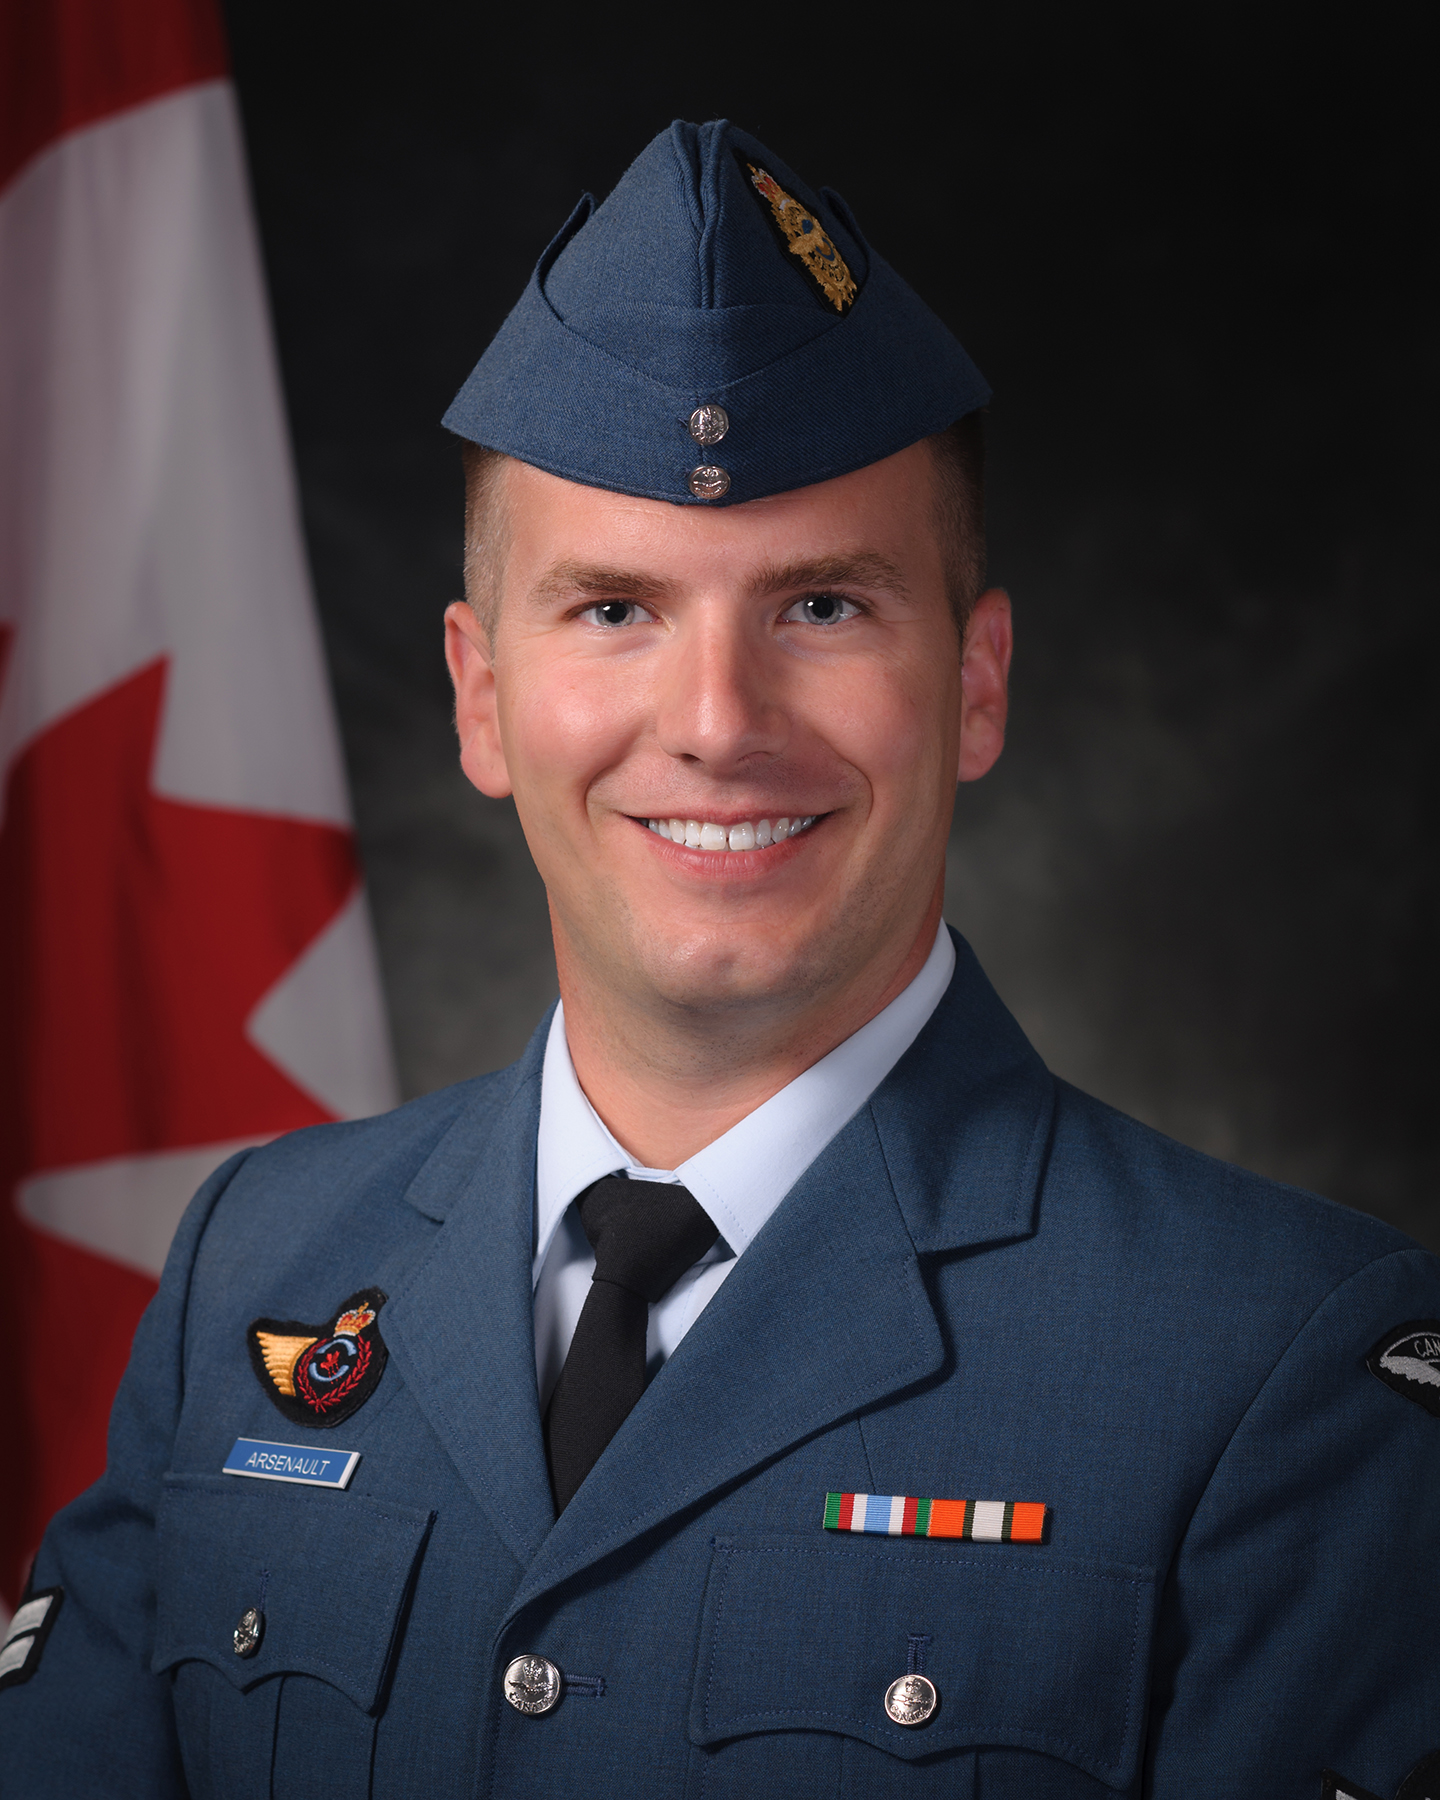 Master Corporal George Arsenault, a 16 Wing aerospace control instructor at the Canadian Forces School of Aerospace Control Operations in Cornwall, Ontario, served as the Royal Canadian Air Force Sentry at the National War Memorial in Ottawa, Ontario, on Remembrance Day, November 11, 2016. PHOTO: DND, SU08-2016-0811-010